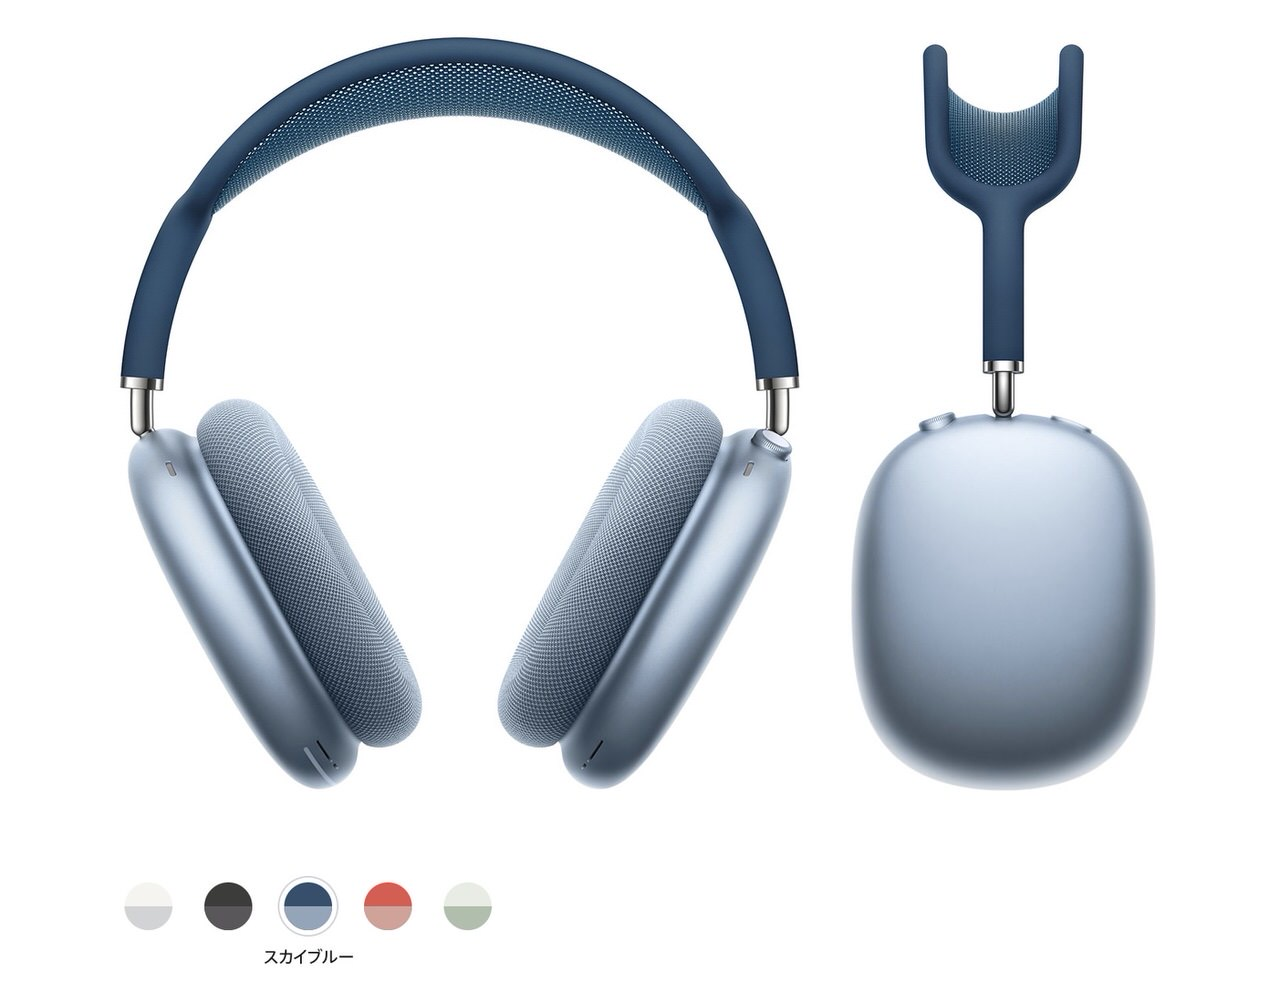 Airpods max release 2 202012